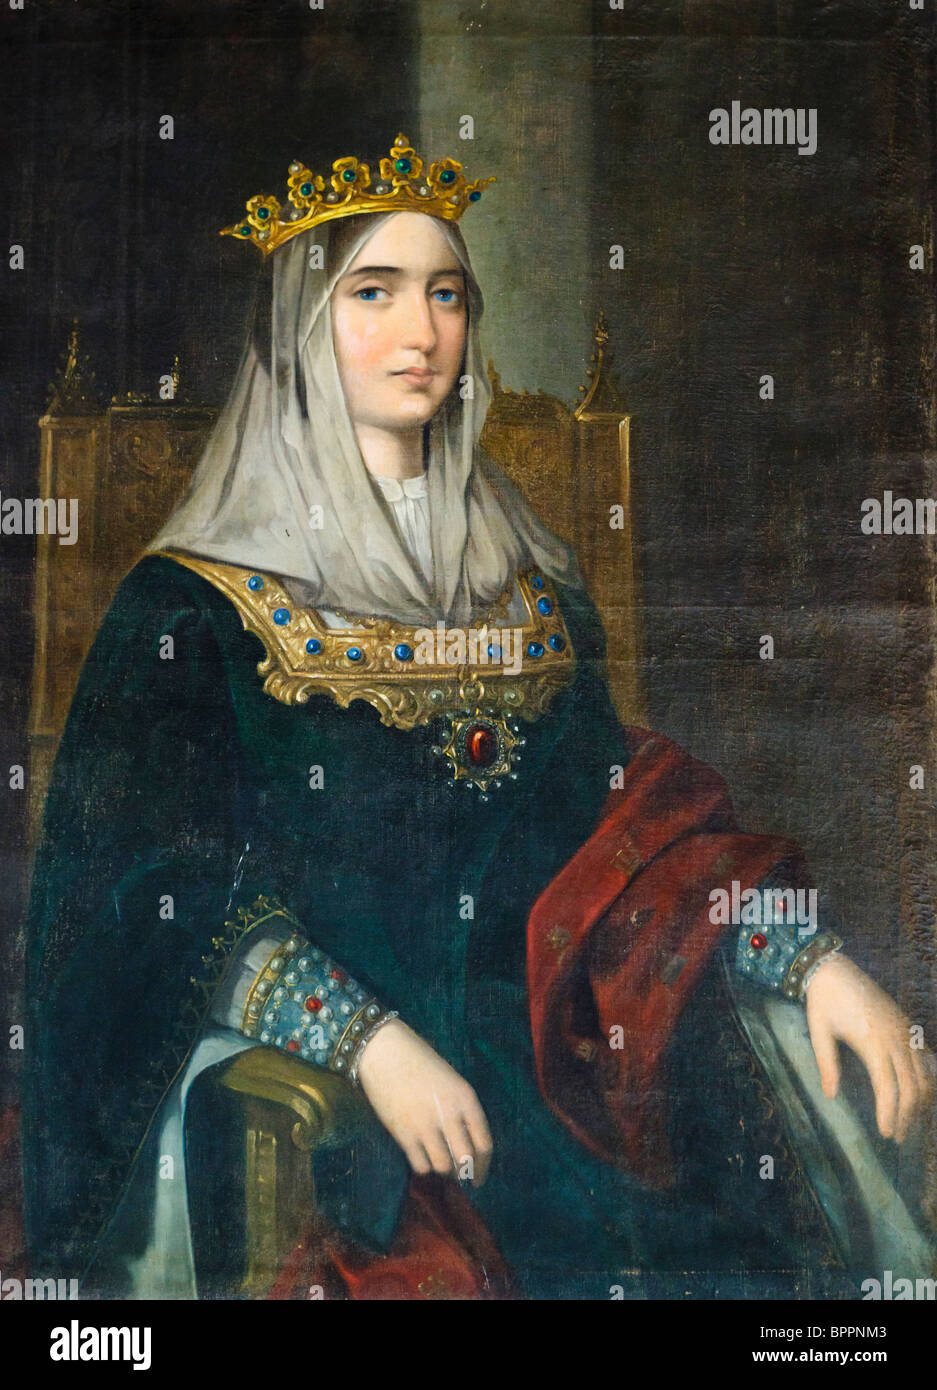 Isabella the Catholic, Isabel la Católica 1451 - 1504. Queen of Castile and of Aragon. - Stock Image